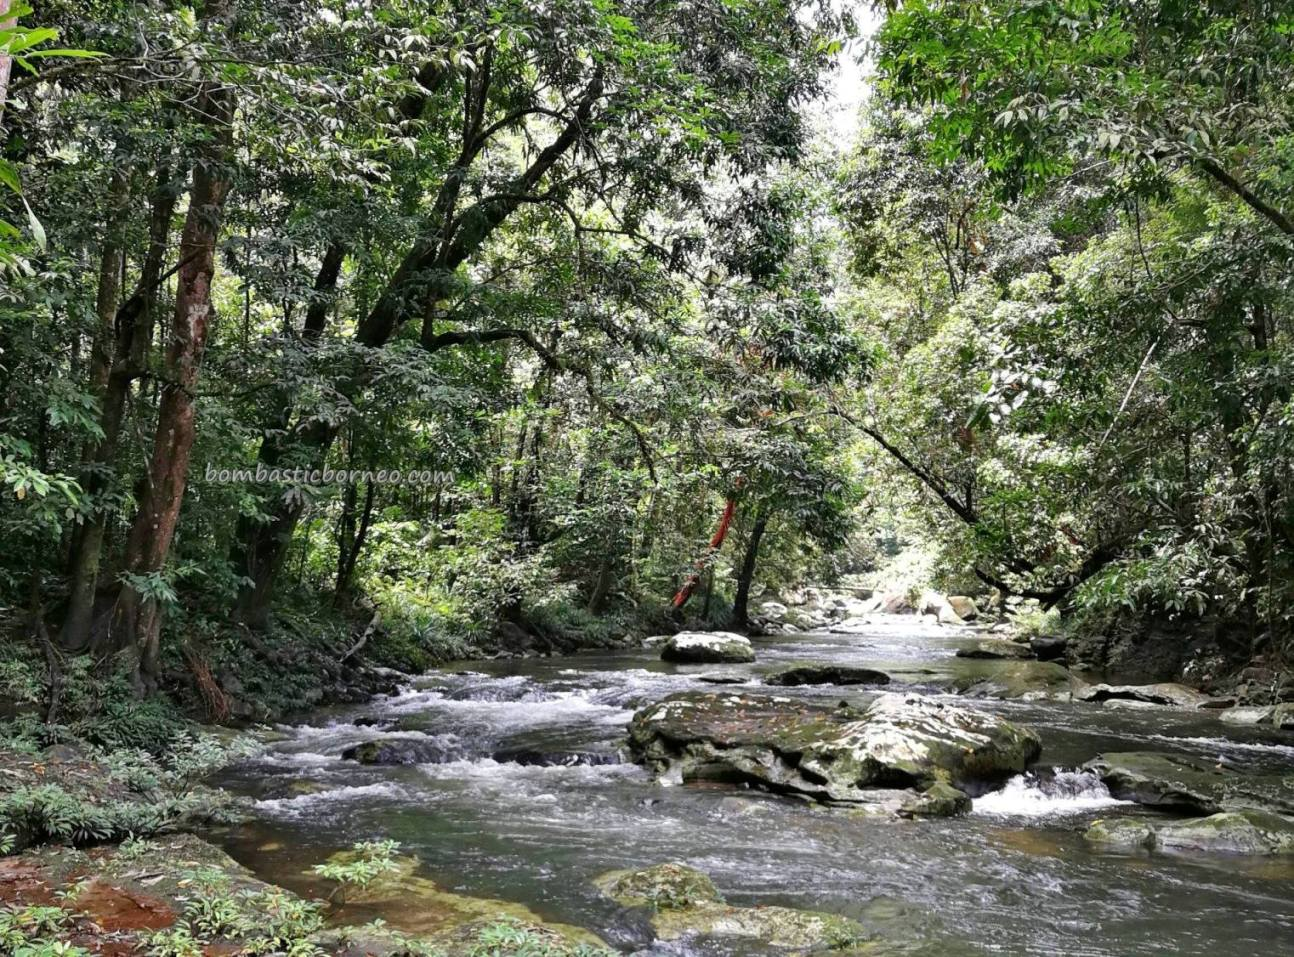 Riam Menajur, Waterfall, adventure, nature, jungle trekking, destination, Bengkayang, Borneo, Indonesia, West Kalimantan, Dusun Laek, Sanggau Ledo, Tourism, tourist attraction, travel guide, transborder,